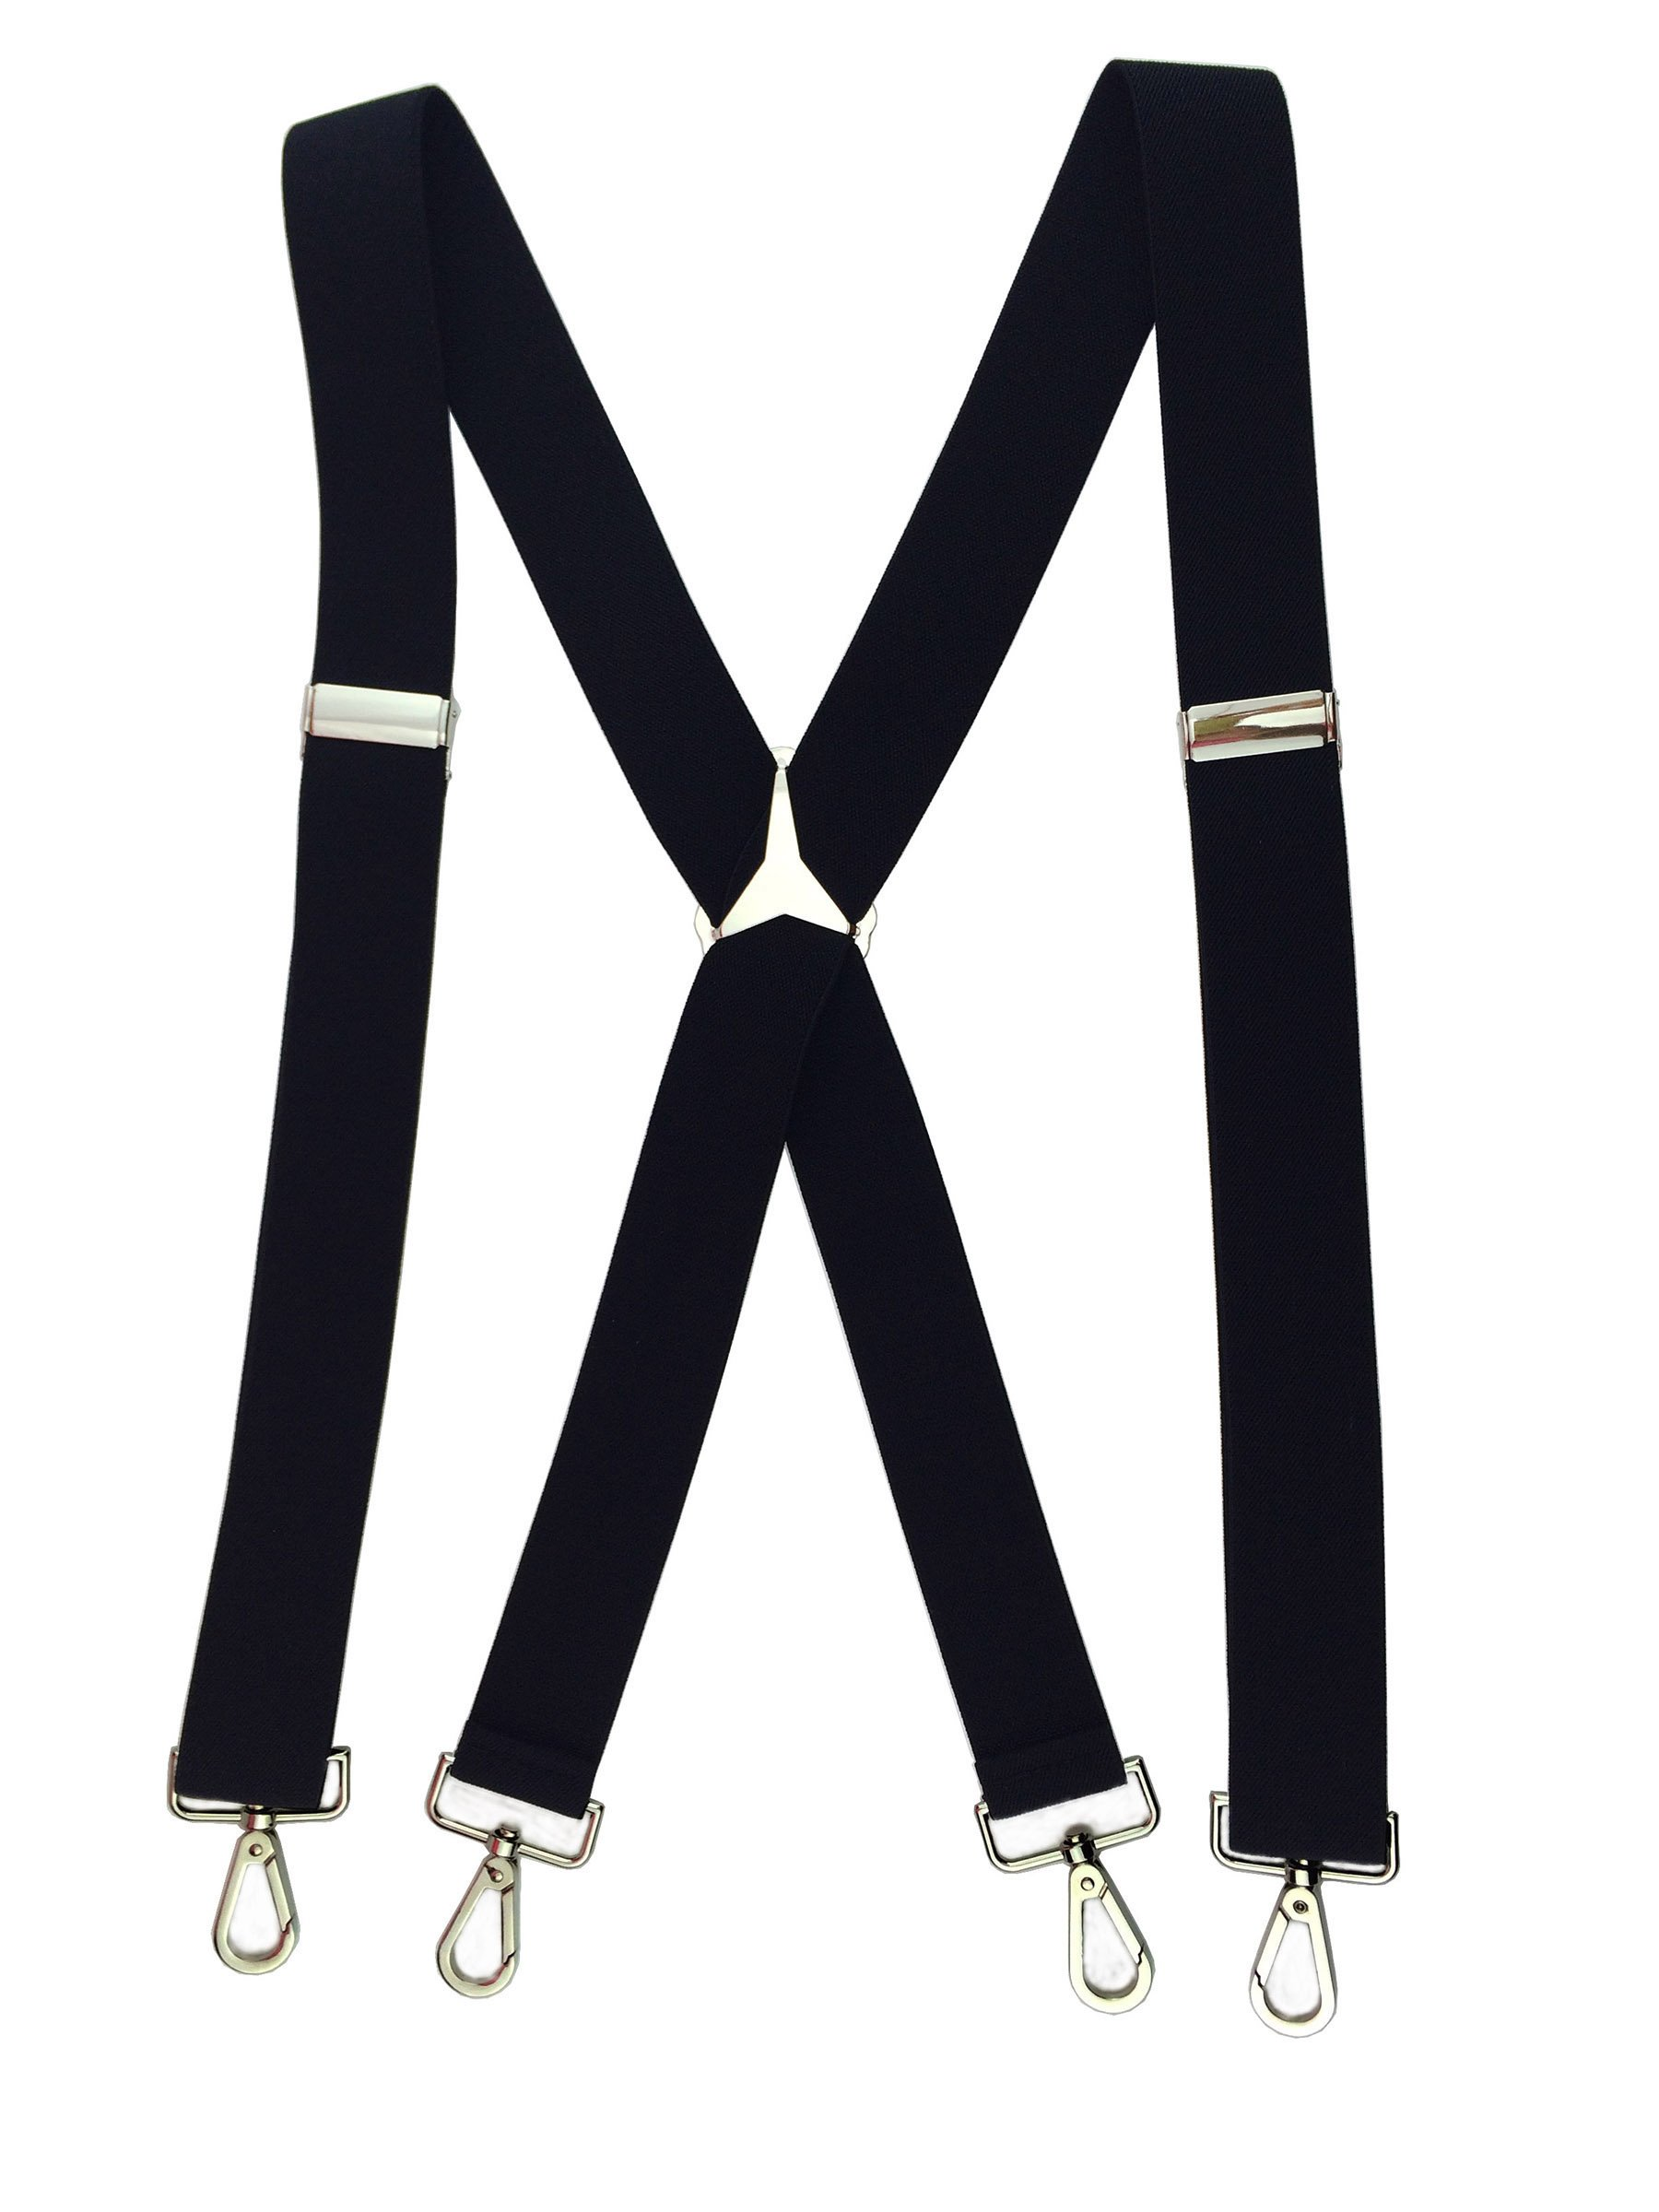 Romanlin Suspenders for Men Elastic X Back 4 Metal Swivel Hook Clip End Adjustable Black